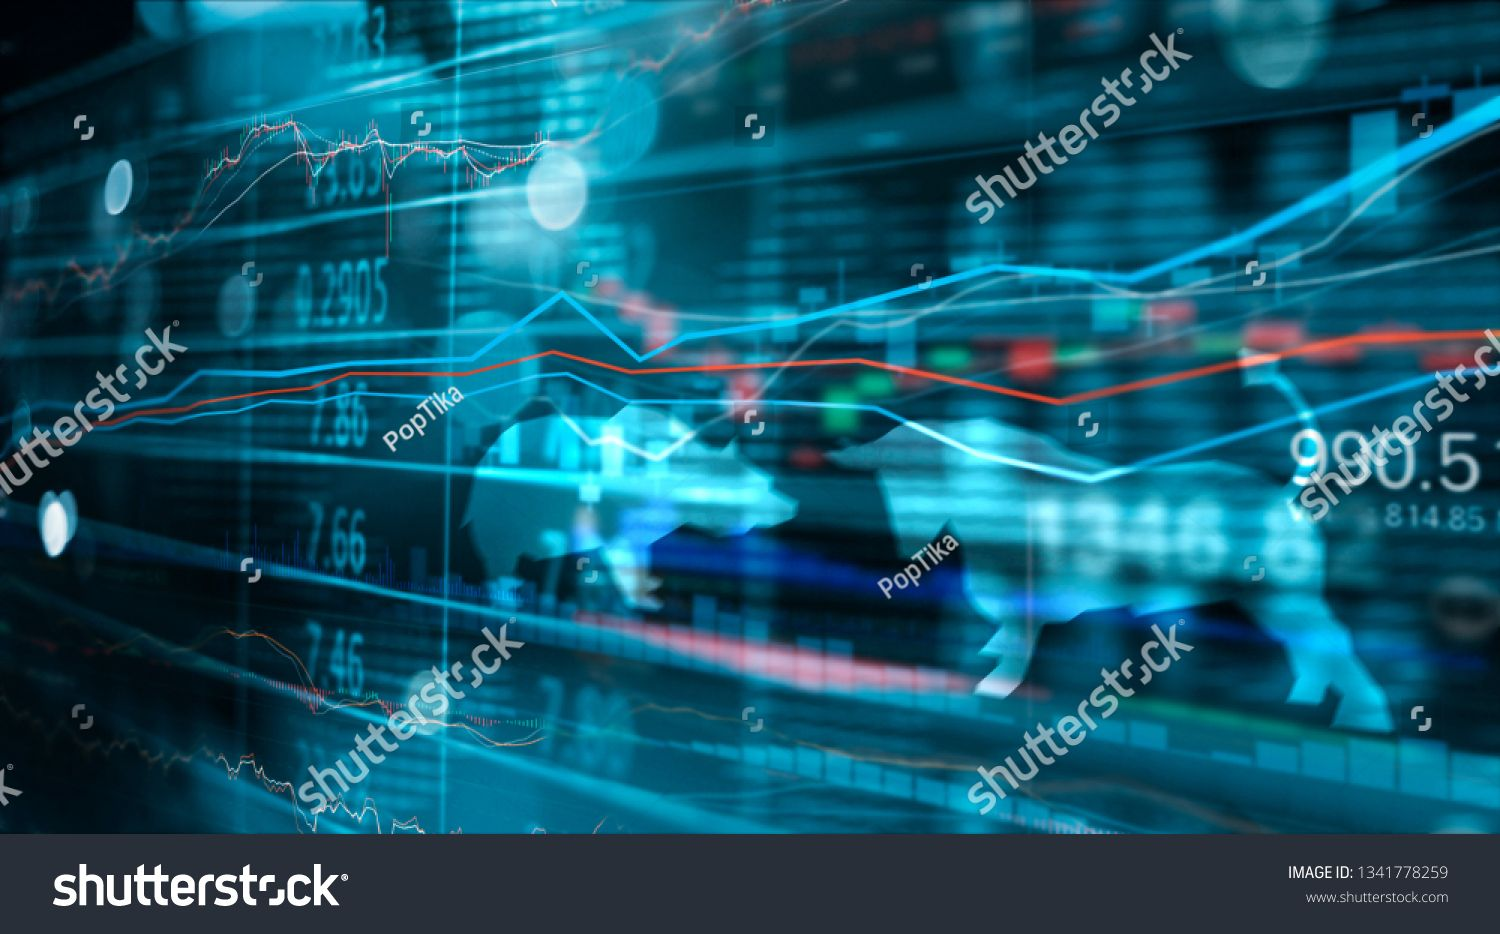 Financial Stock Market Numbers And Forex Trading Graph Business And Stock Market Data Financial Investme In 2020 Stock Market Data Stock Market Financial Investments